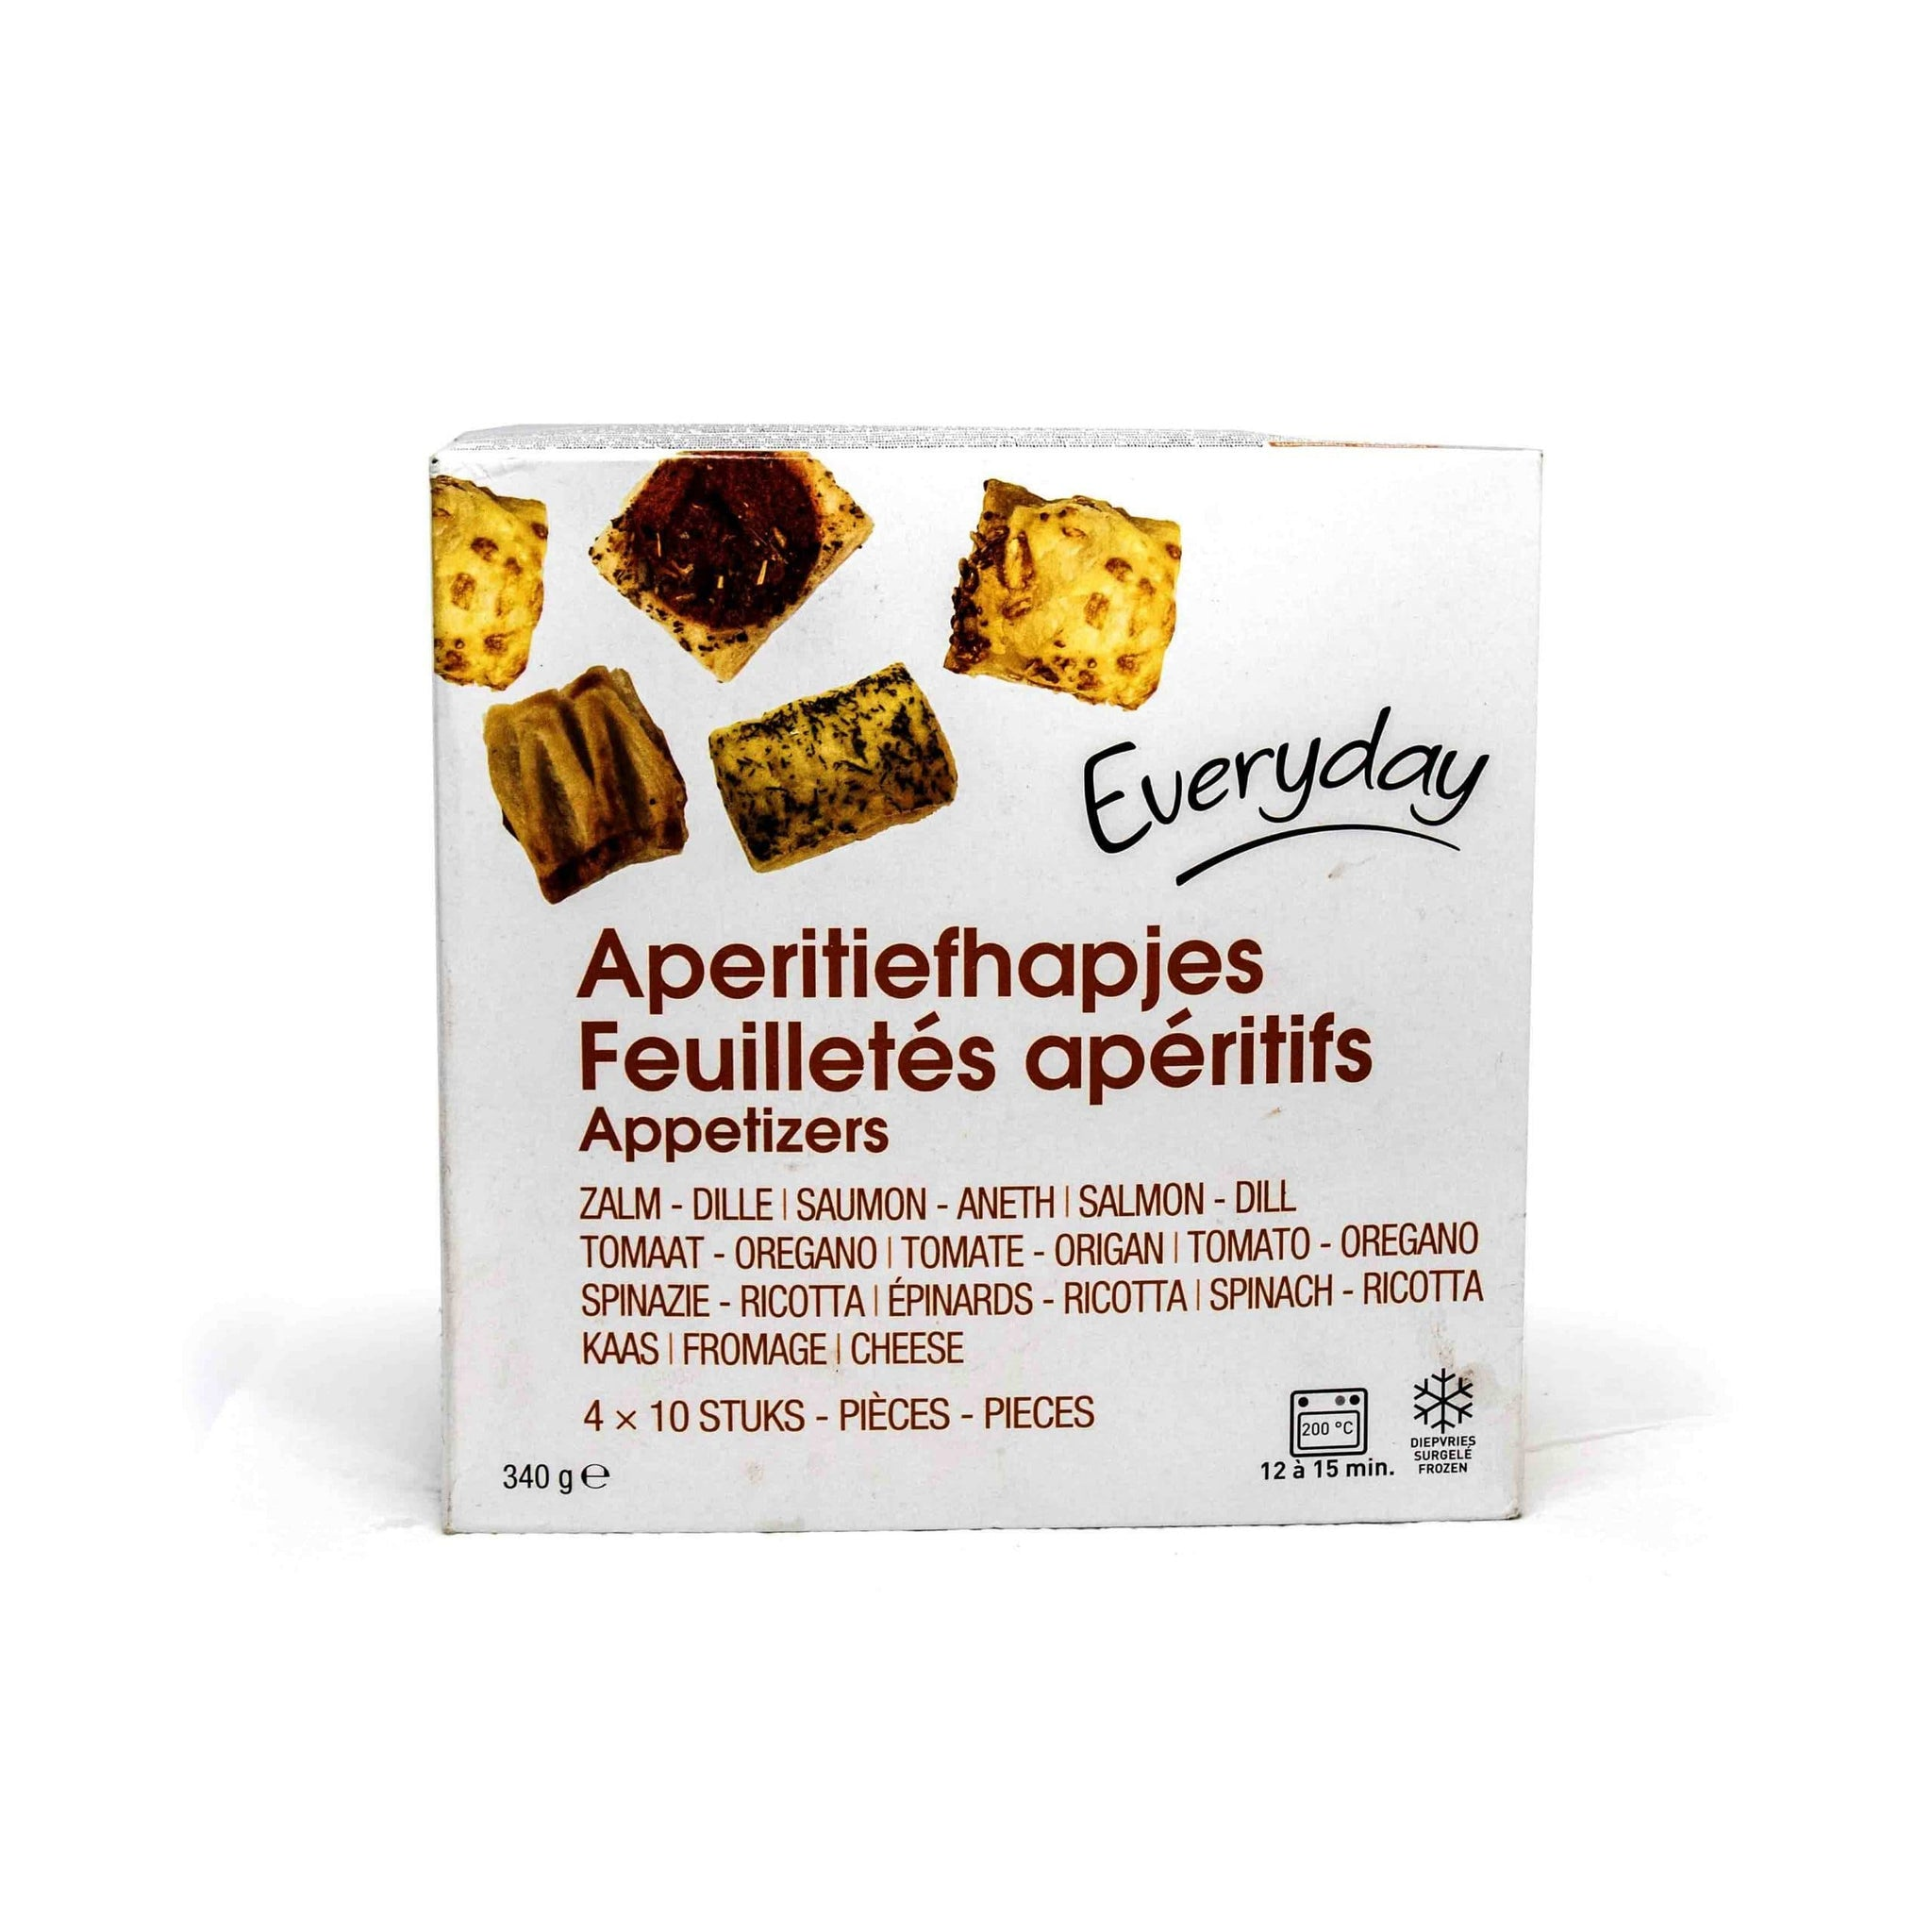 Everyday aperitif snacks 40PC 340g